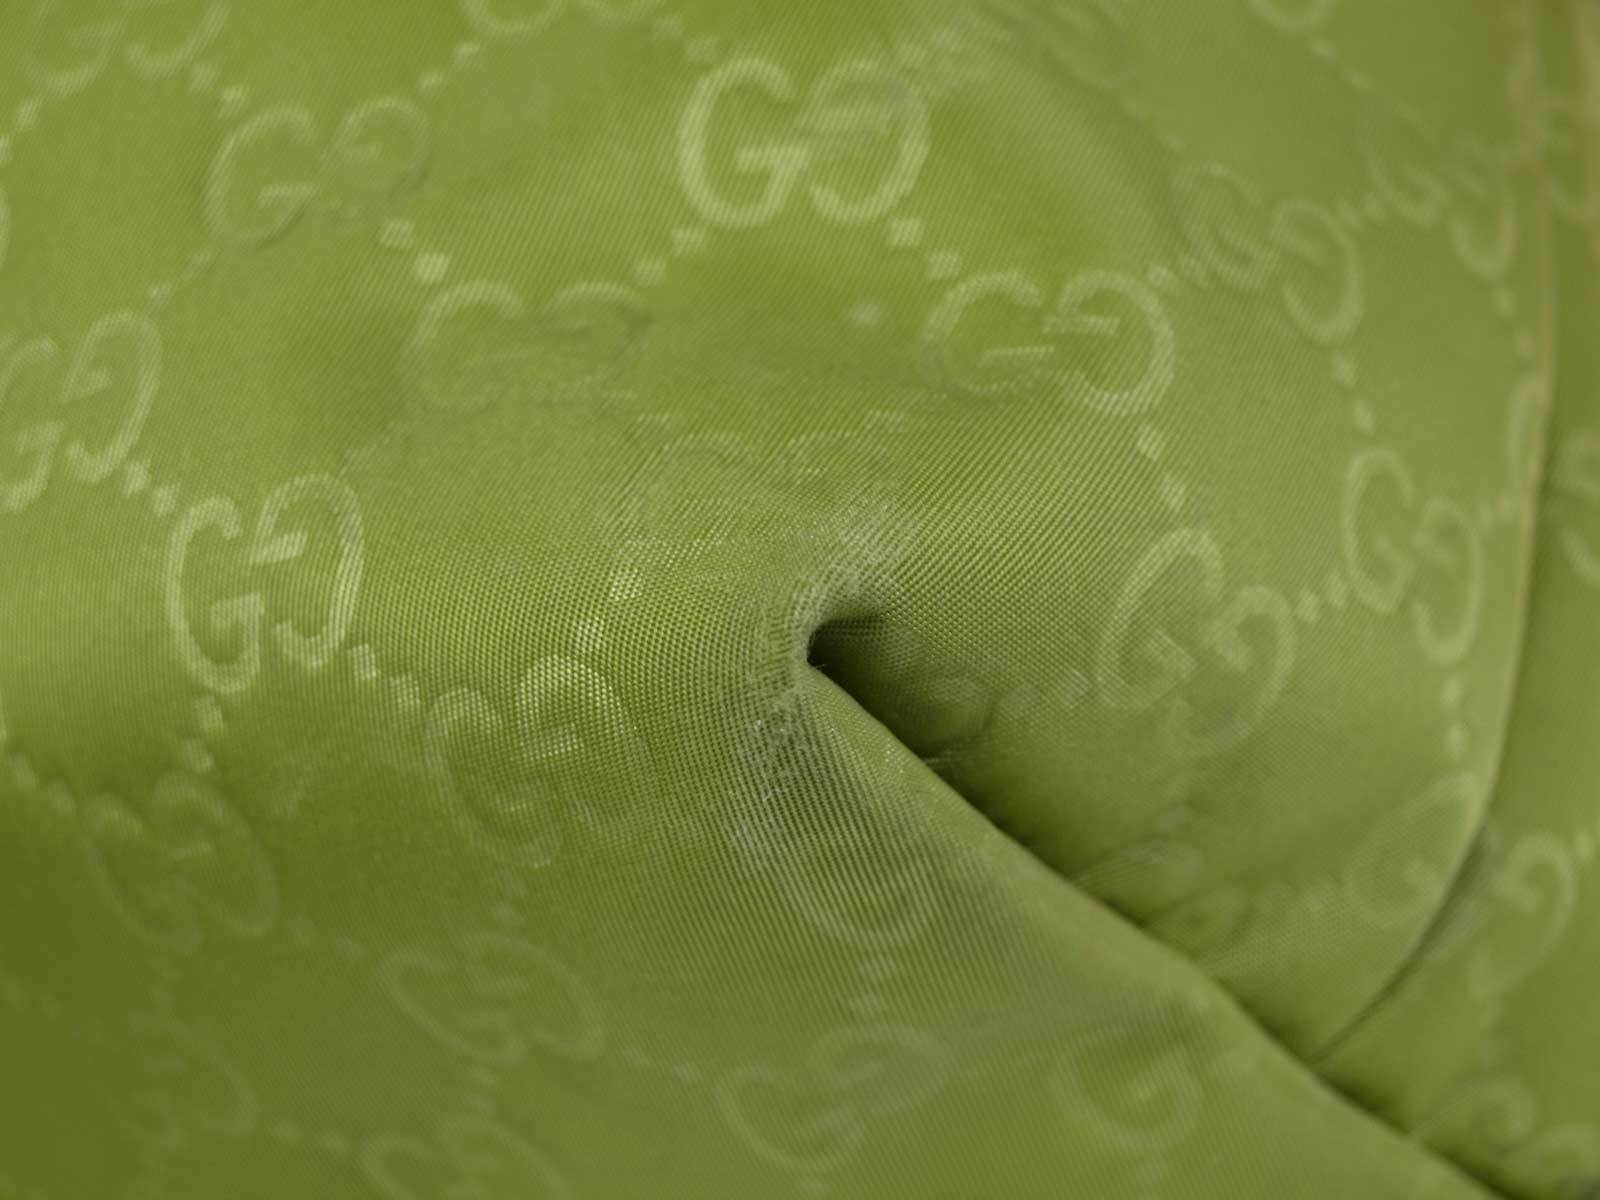 Auth GUCCI GG Pattern Nylon Canvas Leather Yellow Green Tote Bag GS1875